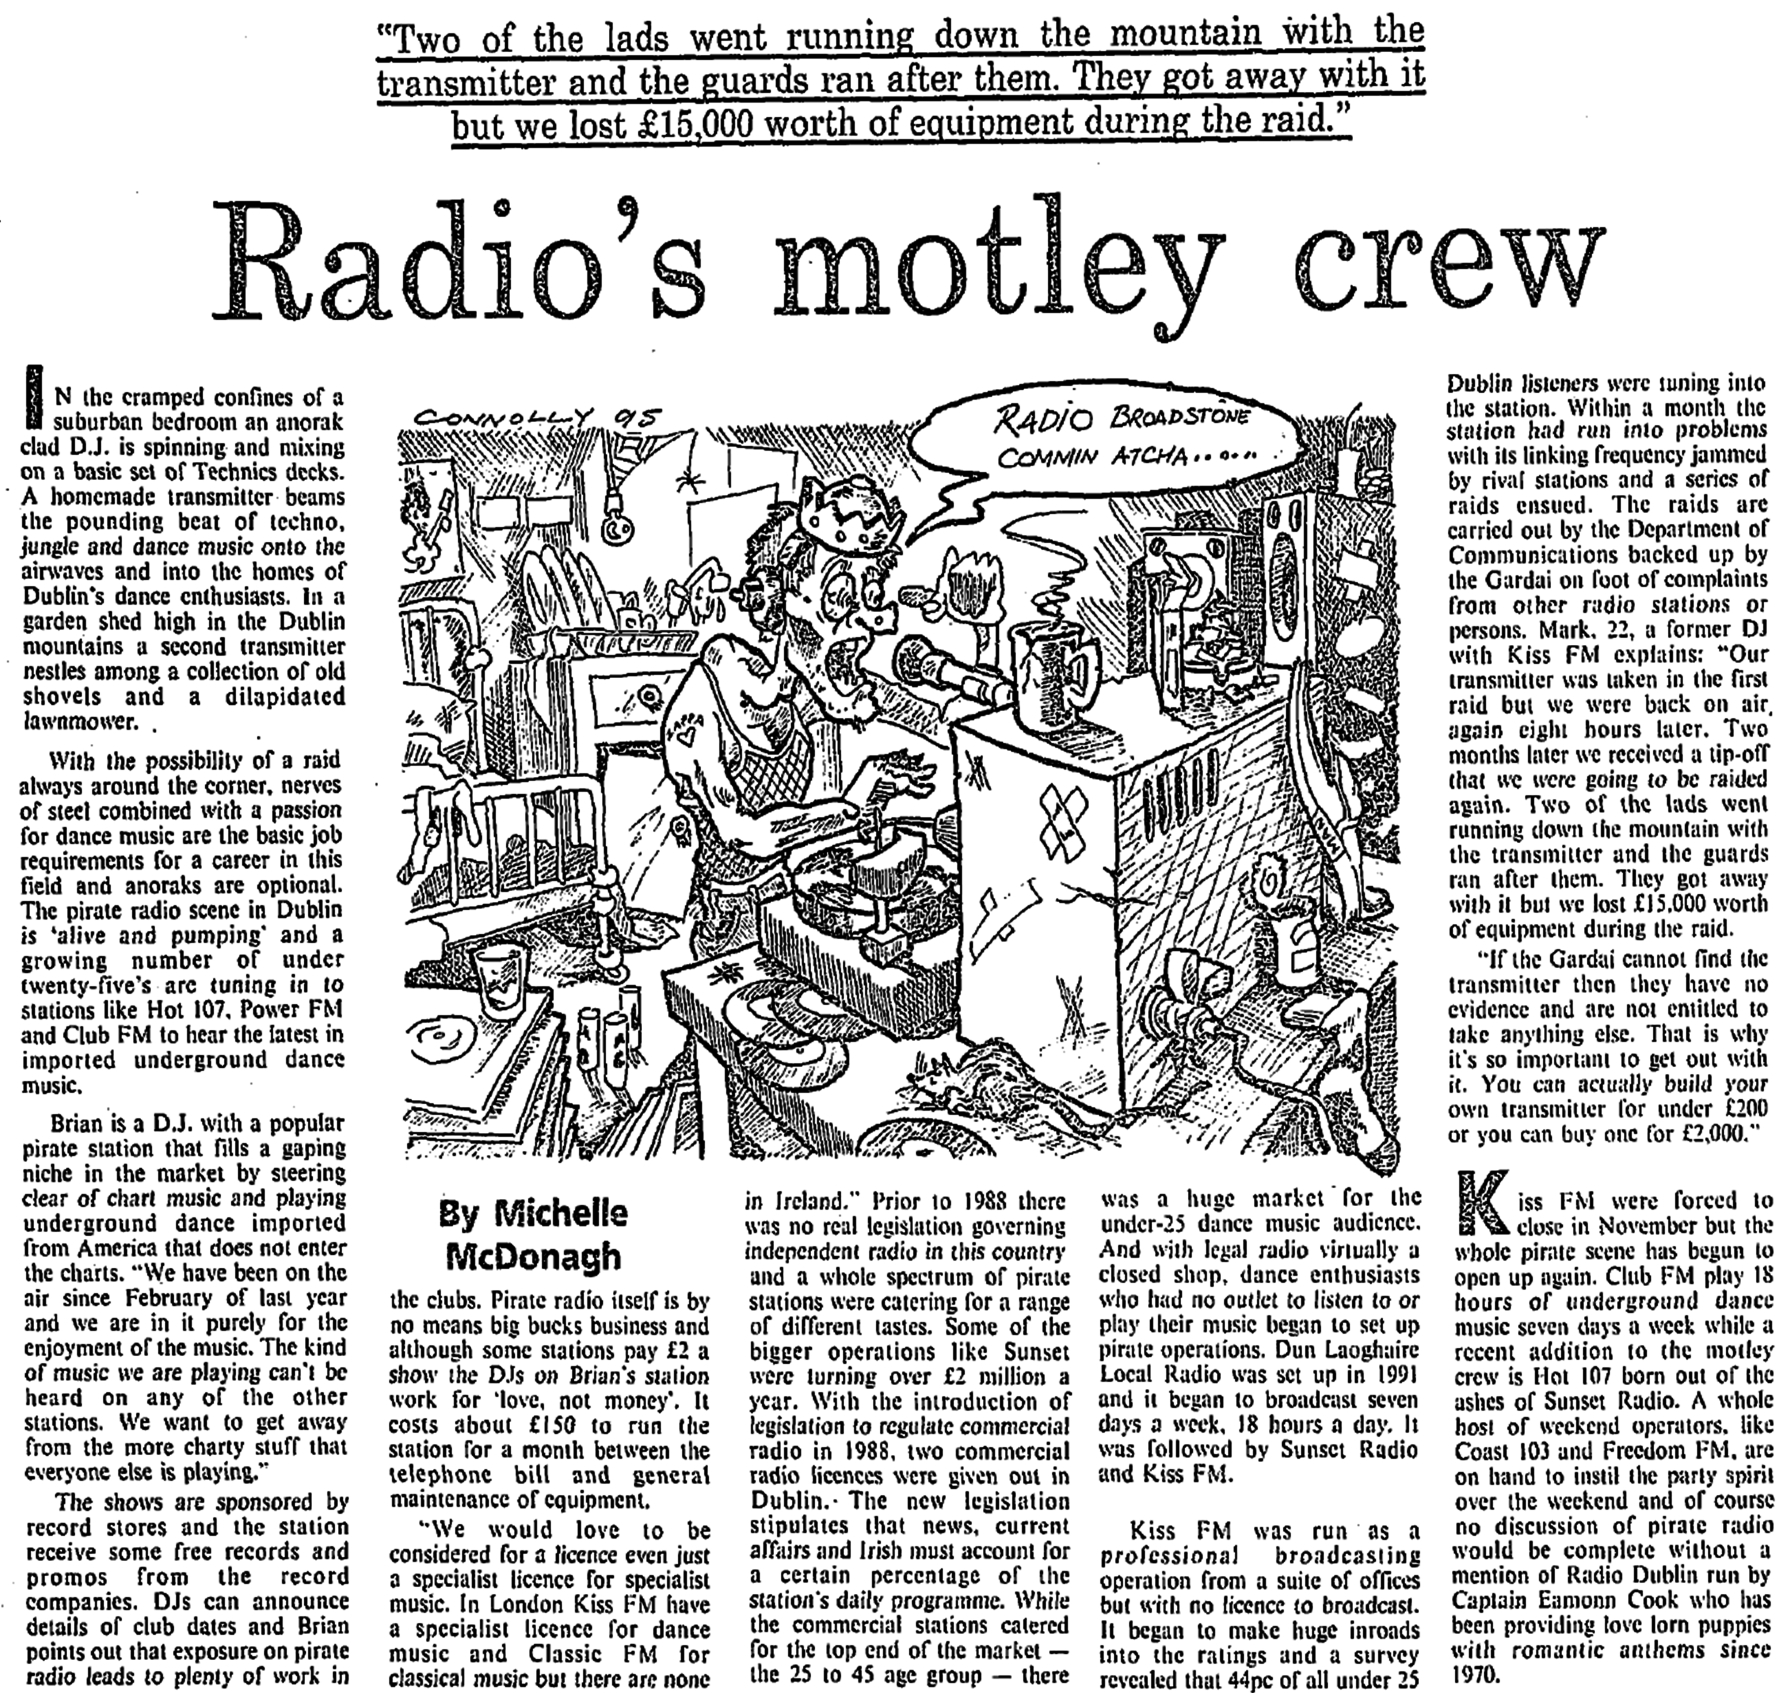 Radio's motley crew was a headline from The Irish Independent dated April 4th 1995